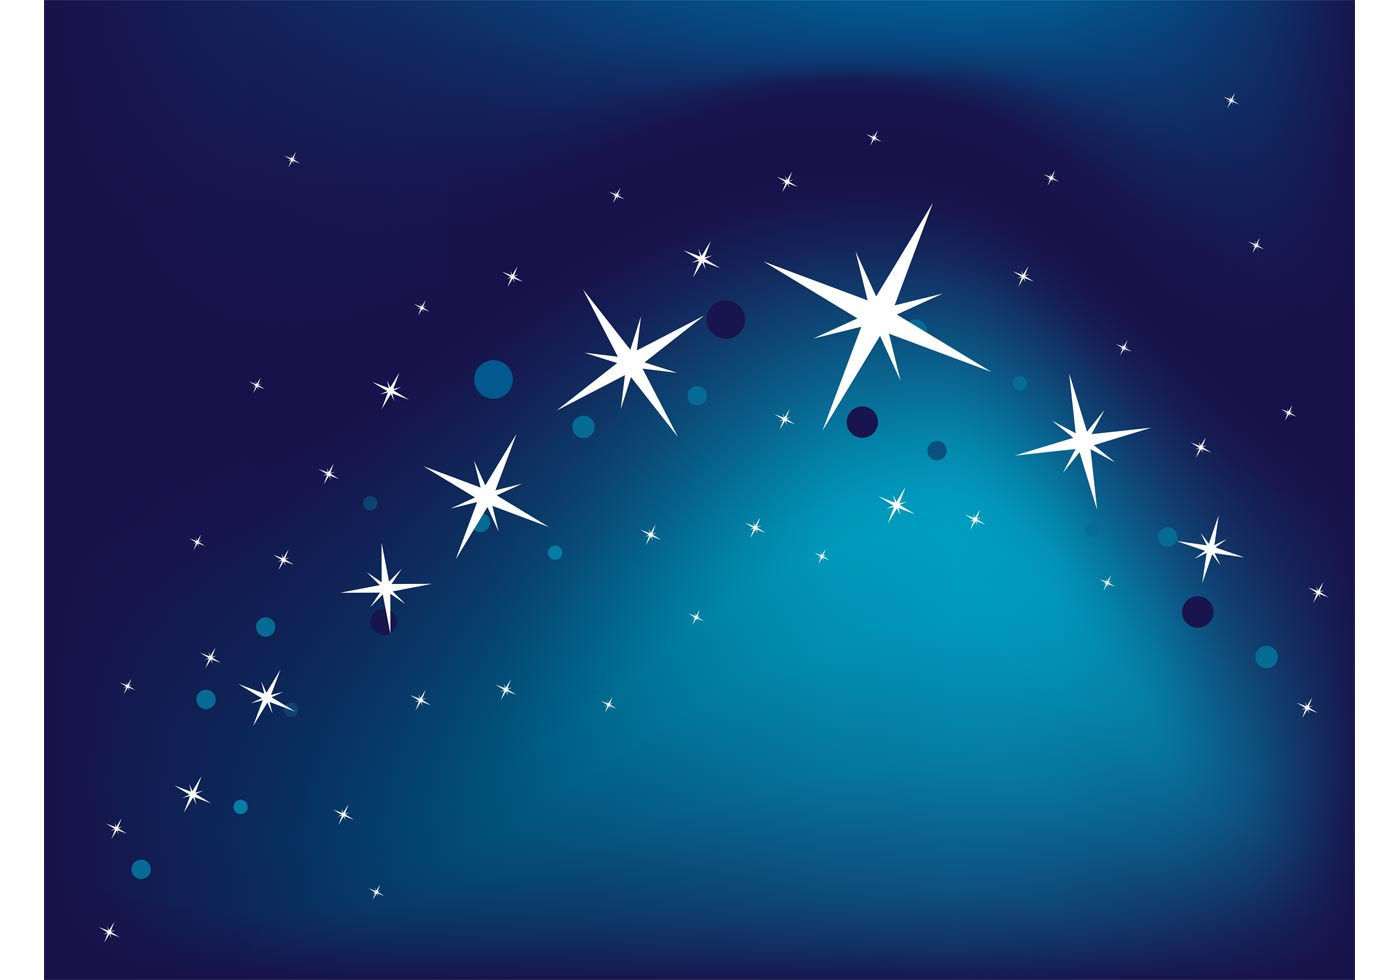 Blue Star Background - Download Free Vector Art, Stock Graphics & Images